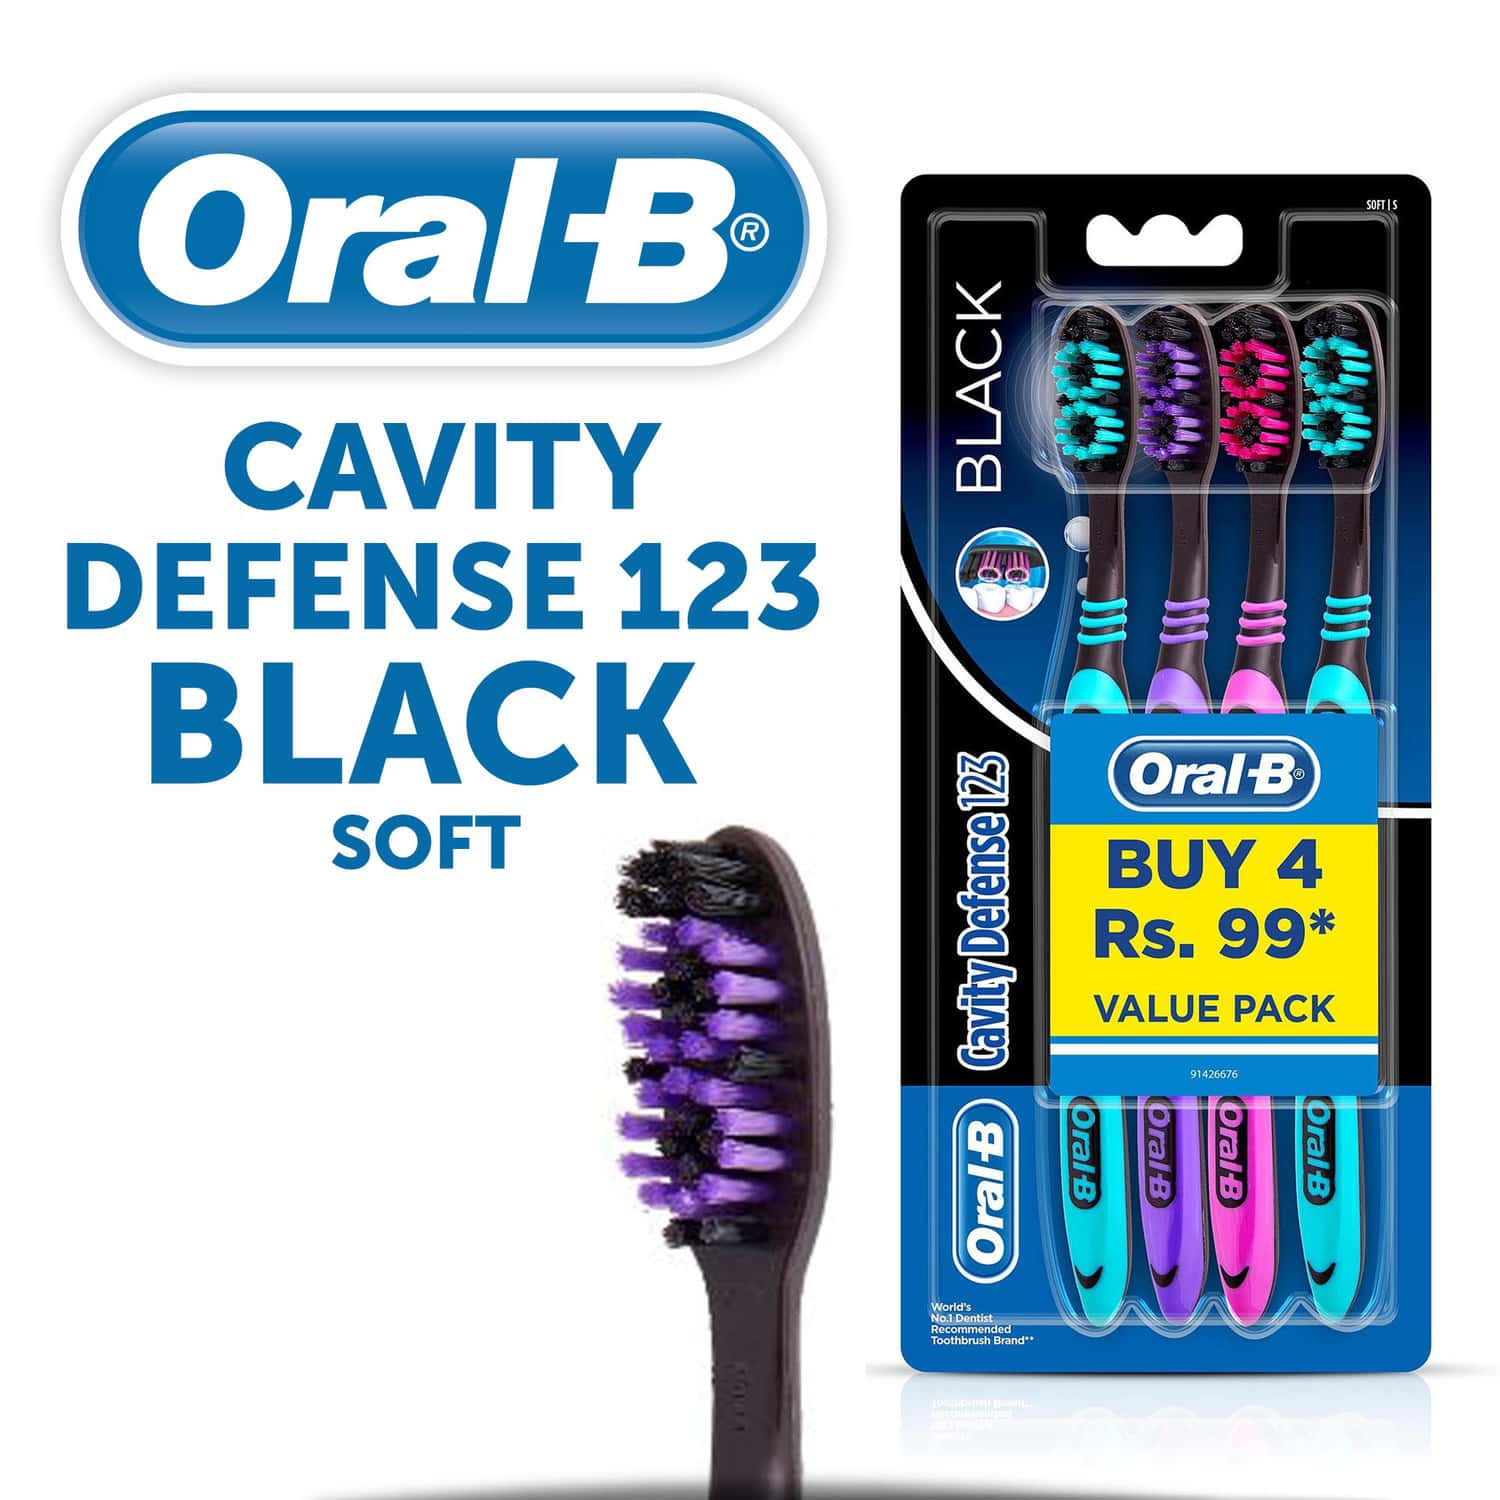 Oral-b Cavity Defense 123 Soft Bristles Toothbrush Packet Of 4 (black)